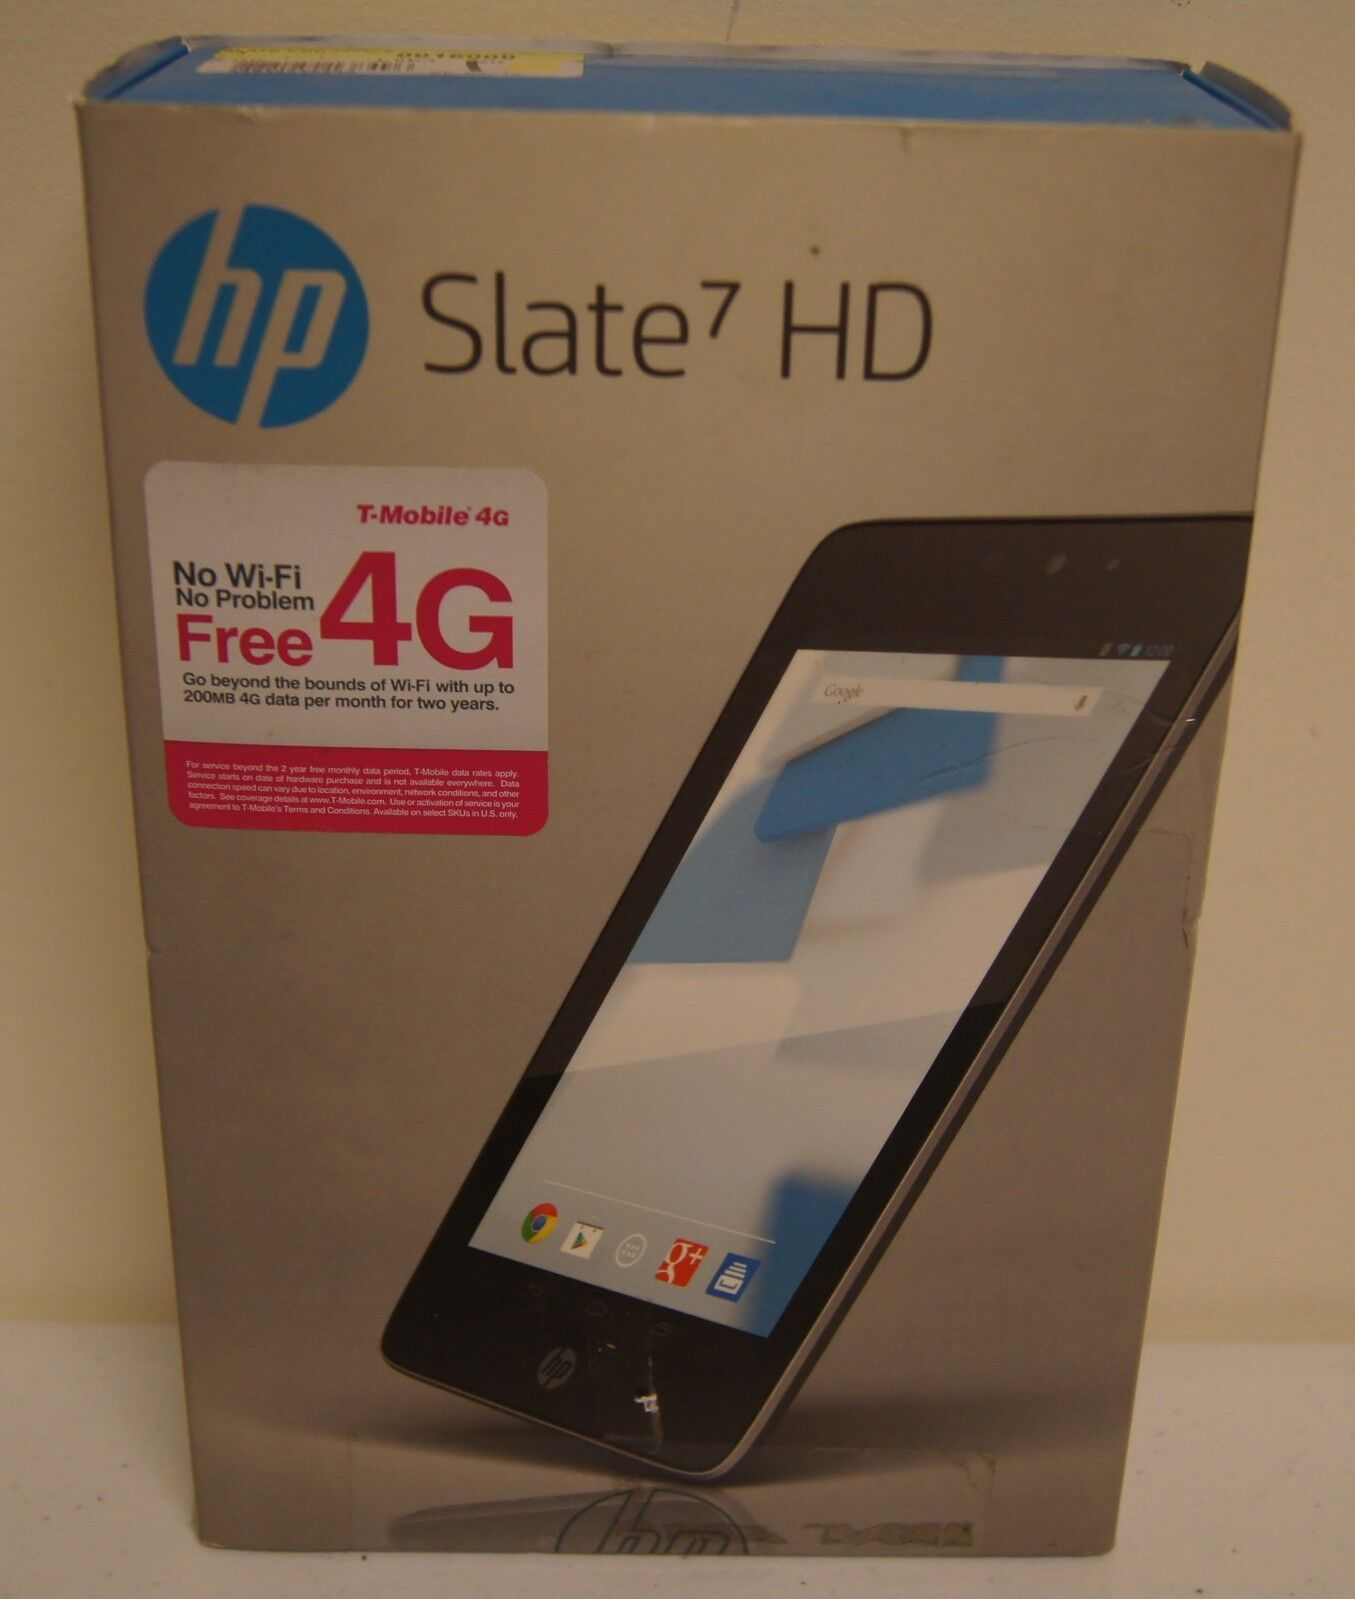 """New! HP Slate 7 HD 16GB Silver Tablet with Beats Audio (7"""" Screen, Model 3400US)"""